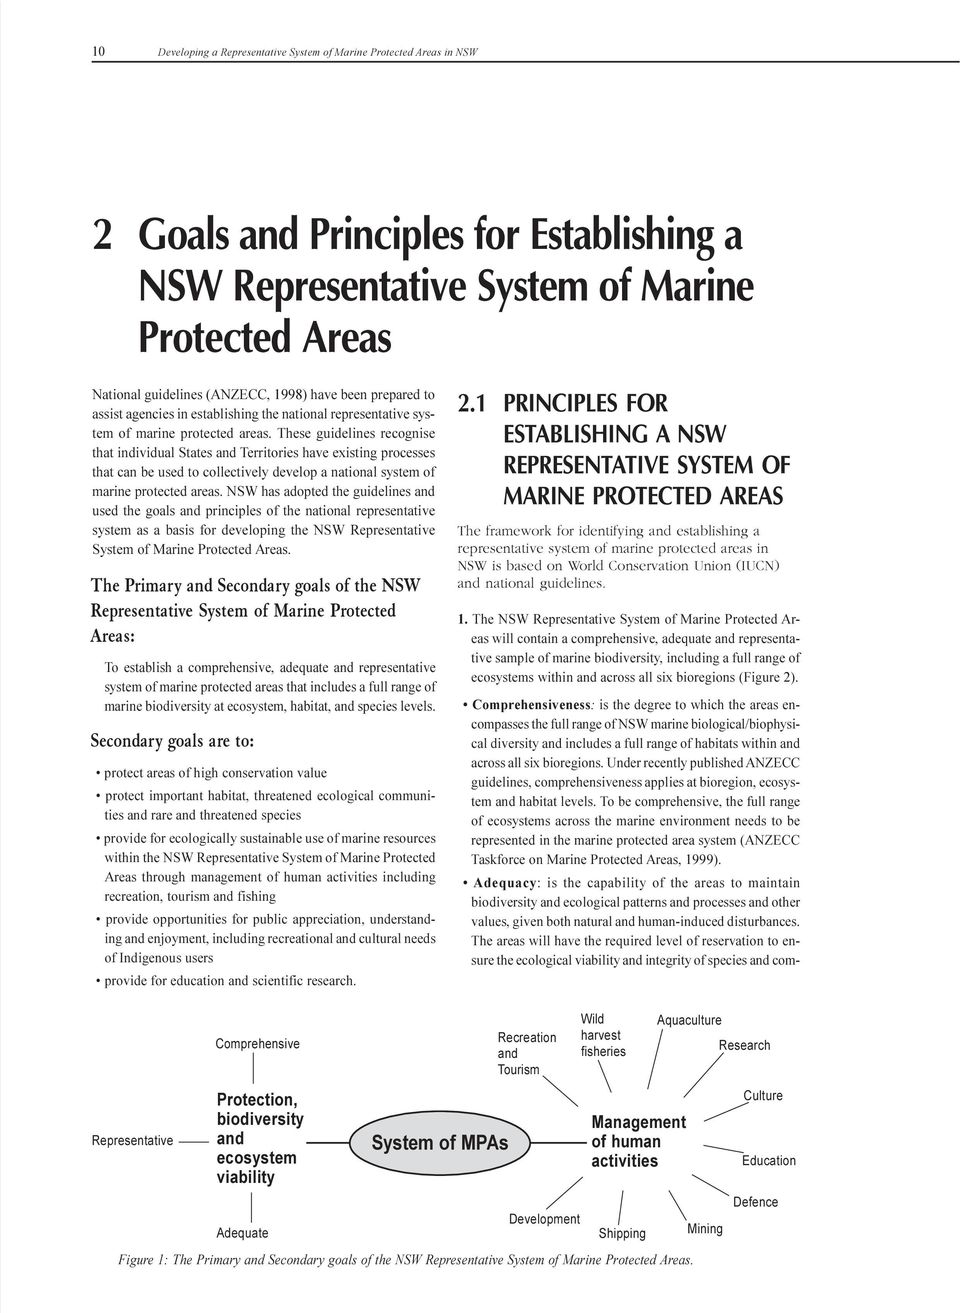 processes that can be used to collectively develop a national system of marine protected areas NSW has adopted the guidelines and used the goals and principles of the national representative system